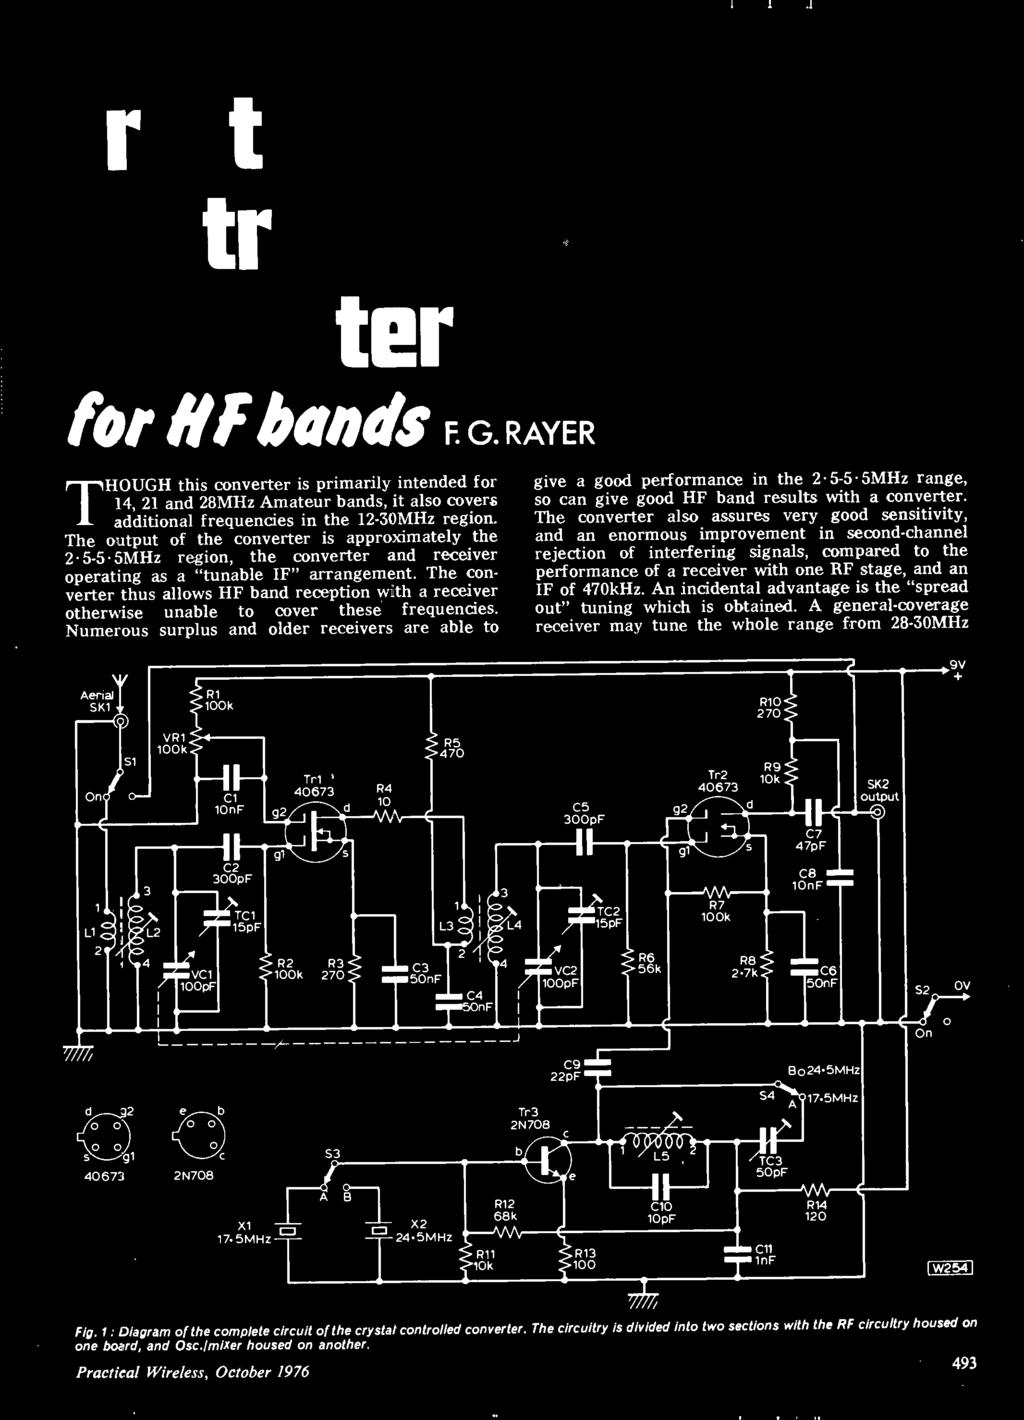 October 40p Project Sheetproject Heall 1rrim Electronics Fl Tone Control Circuit Diagrams Using Ic Tl082 The Converter Thus Allows Hf Band Reception With A Receiver Otherwise Unable To Cover These Frequencies